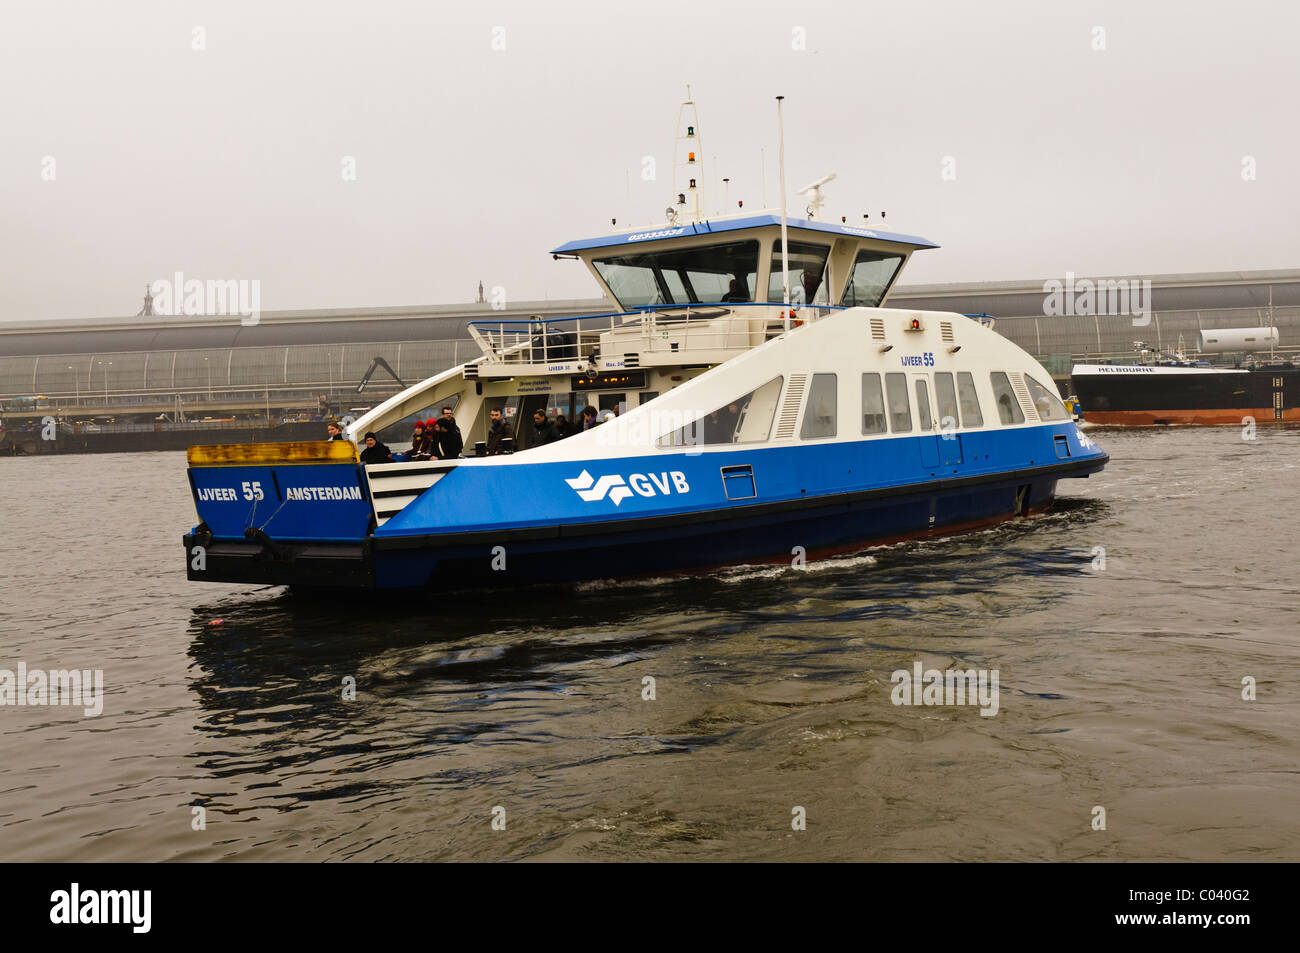 GVB passenger and bike ferry crossing the Het Ij, Amsterdam in poor weather with low visibility - Stock Image